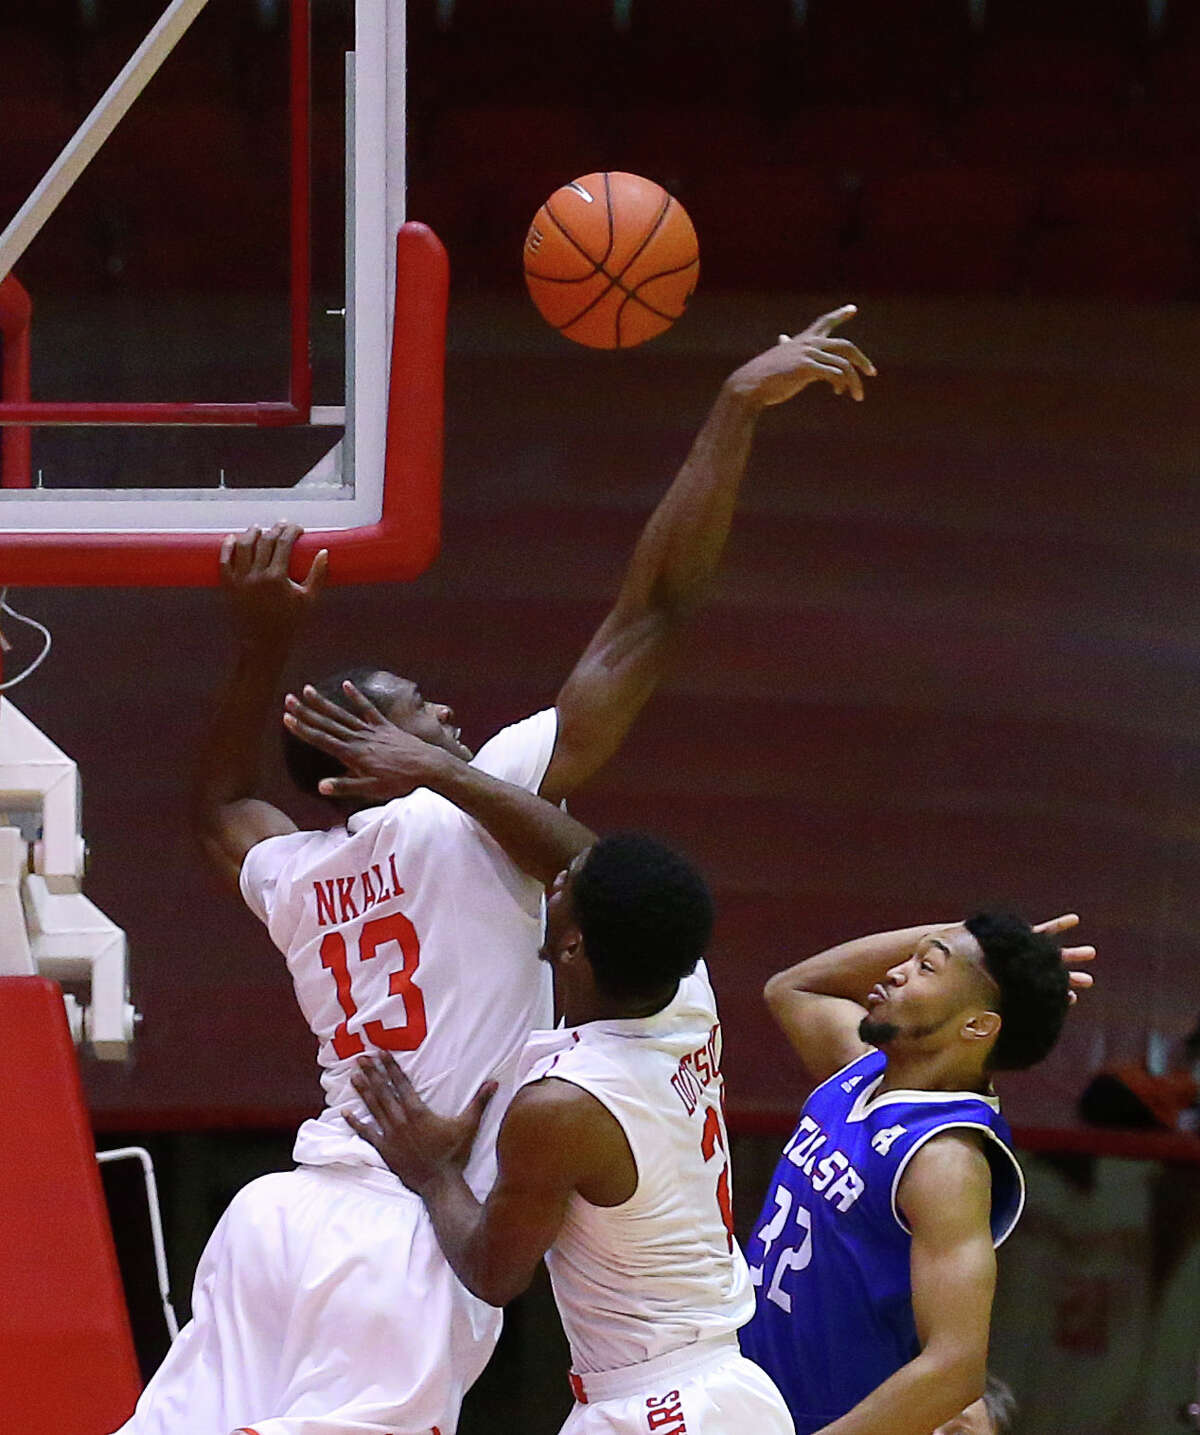 Houston Cougars forward Bertrand Nkali (13) blocks a shot by Tulsa Golden Hurricane forward Will Magnay (12) during the first half of a basketball game at Hofheinz Pavilion, on the University of Houston campus, Wednesday, Jan. 4, 2017, in Houston. ( Jon Shapley / Houston Chronicle )